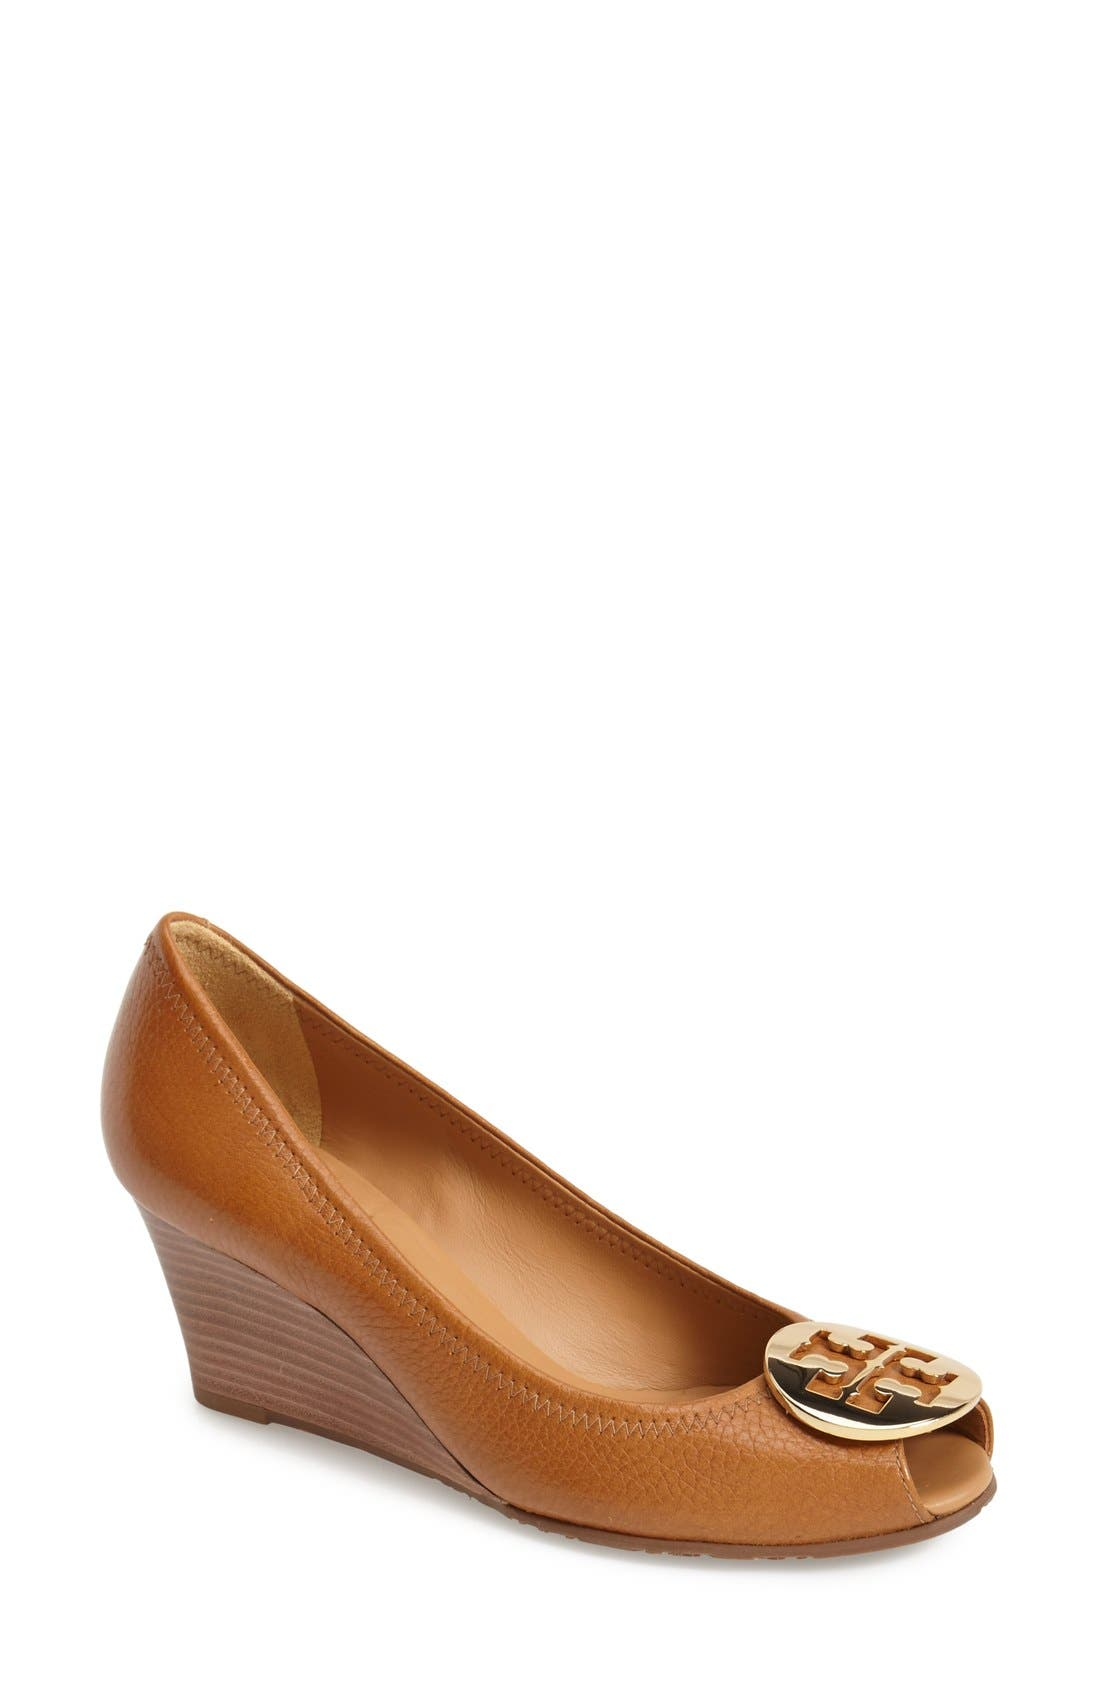 Main Image - Tory Burch 'Sally 2' Peep Toe Wedge Pump (Women)